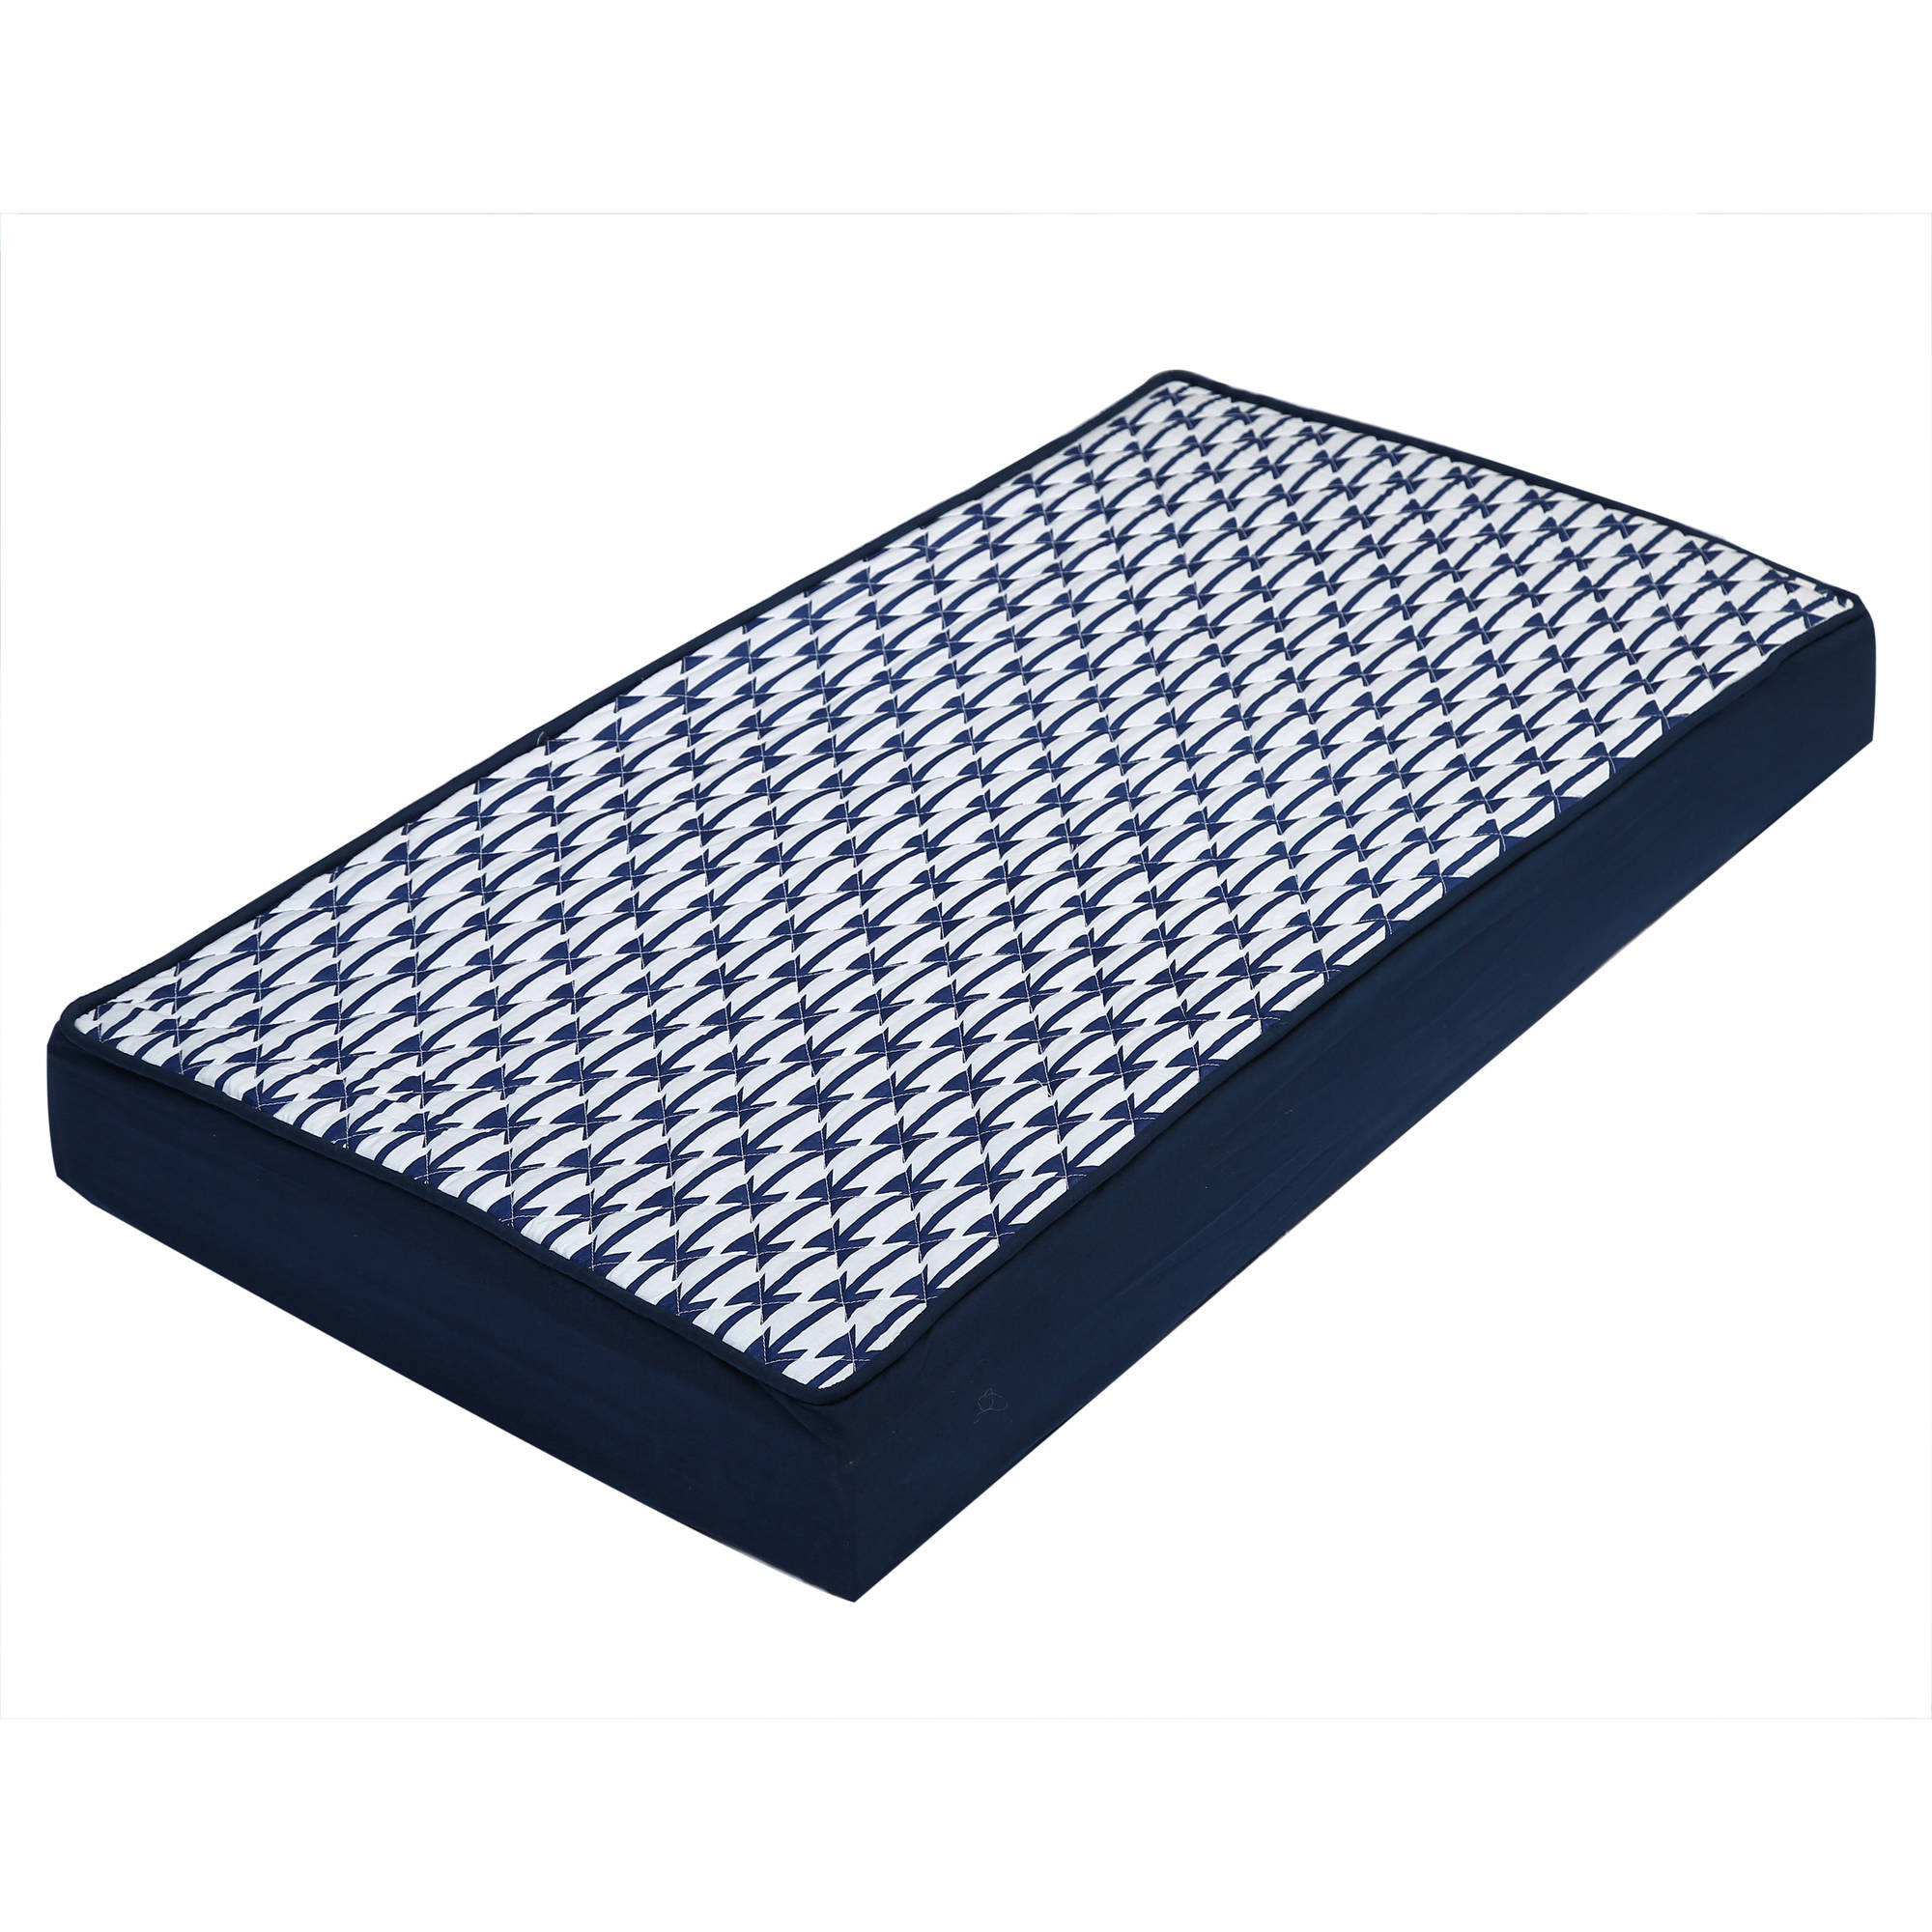 Bacati - Aztec Kilim Quilted Top 100% Cotton Percale with Polyester Batting Diaper Changing Pad Cover, Navy